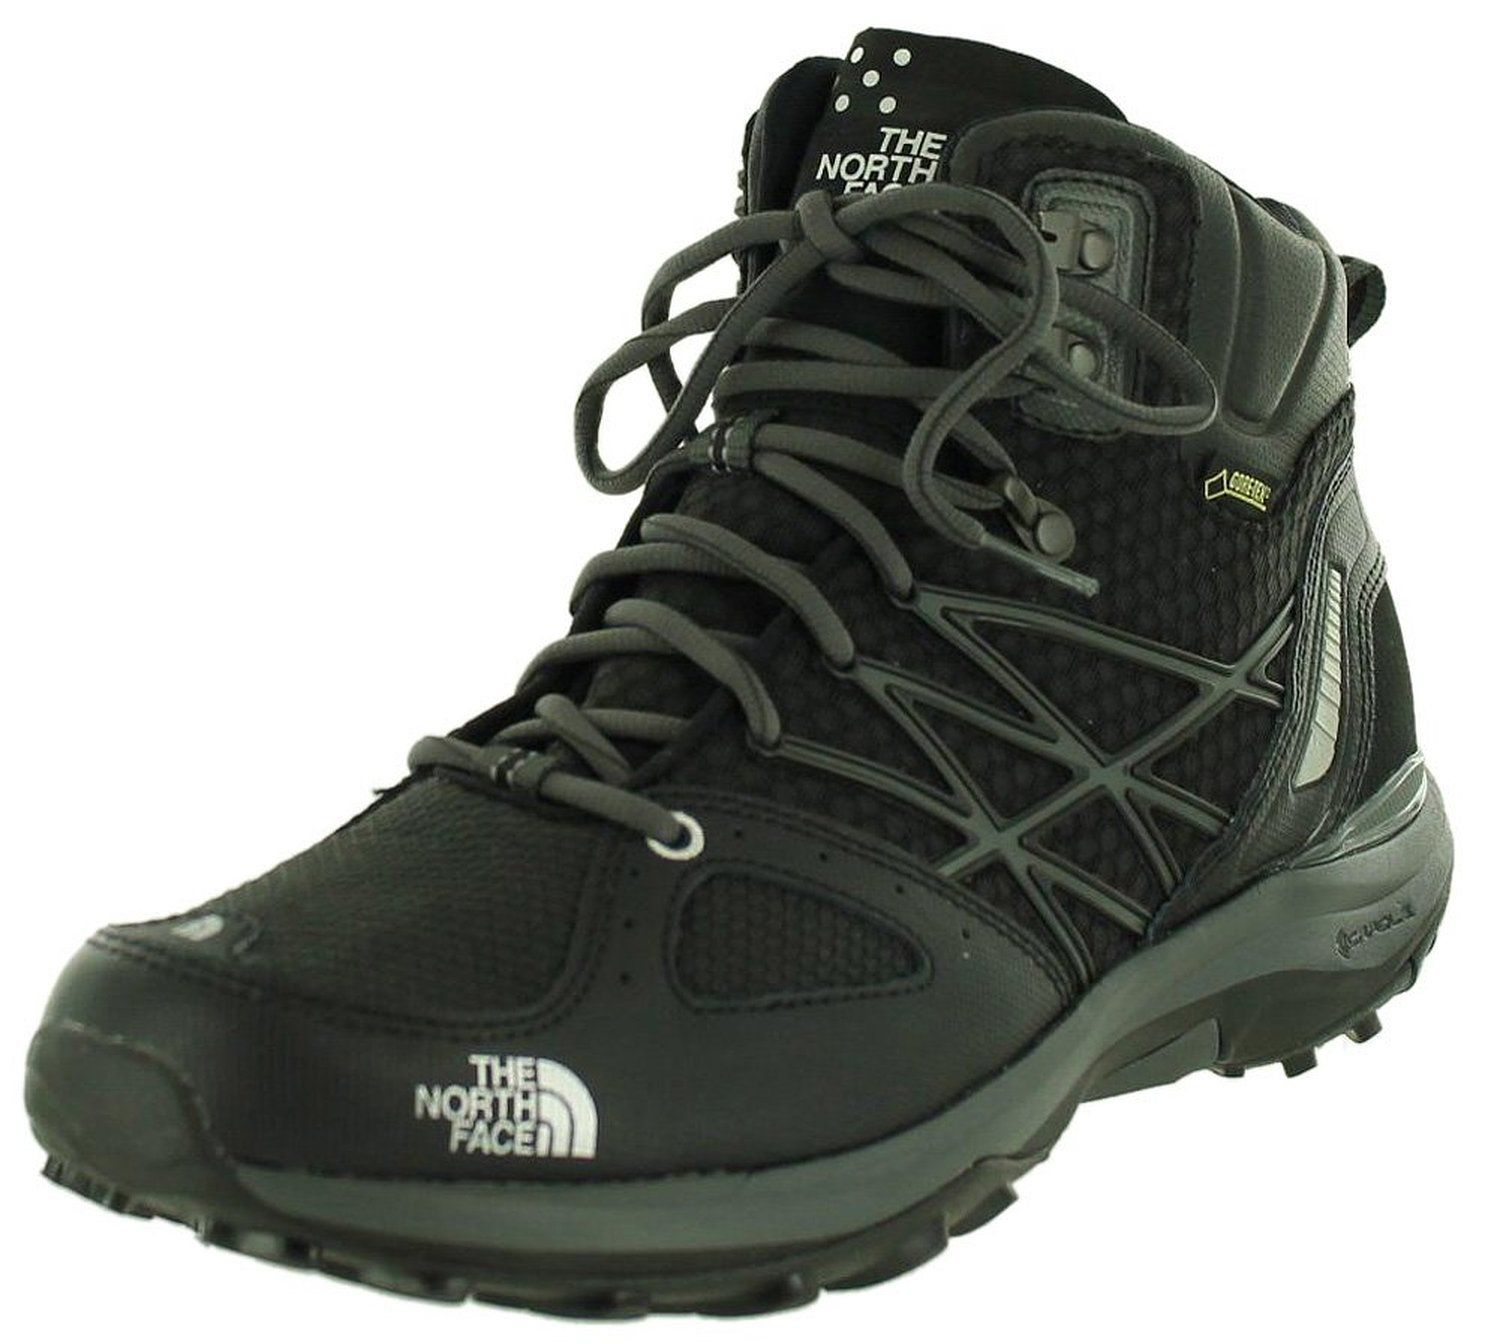 Simple The North Face Endurus GORE-TEX Mid Hiking Boots (Womenu0026#39;s) | Peter Glenn